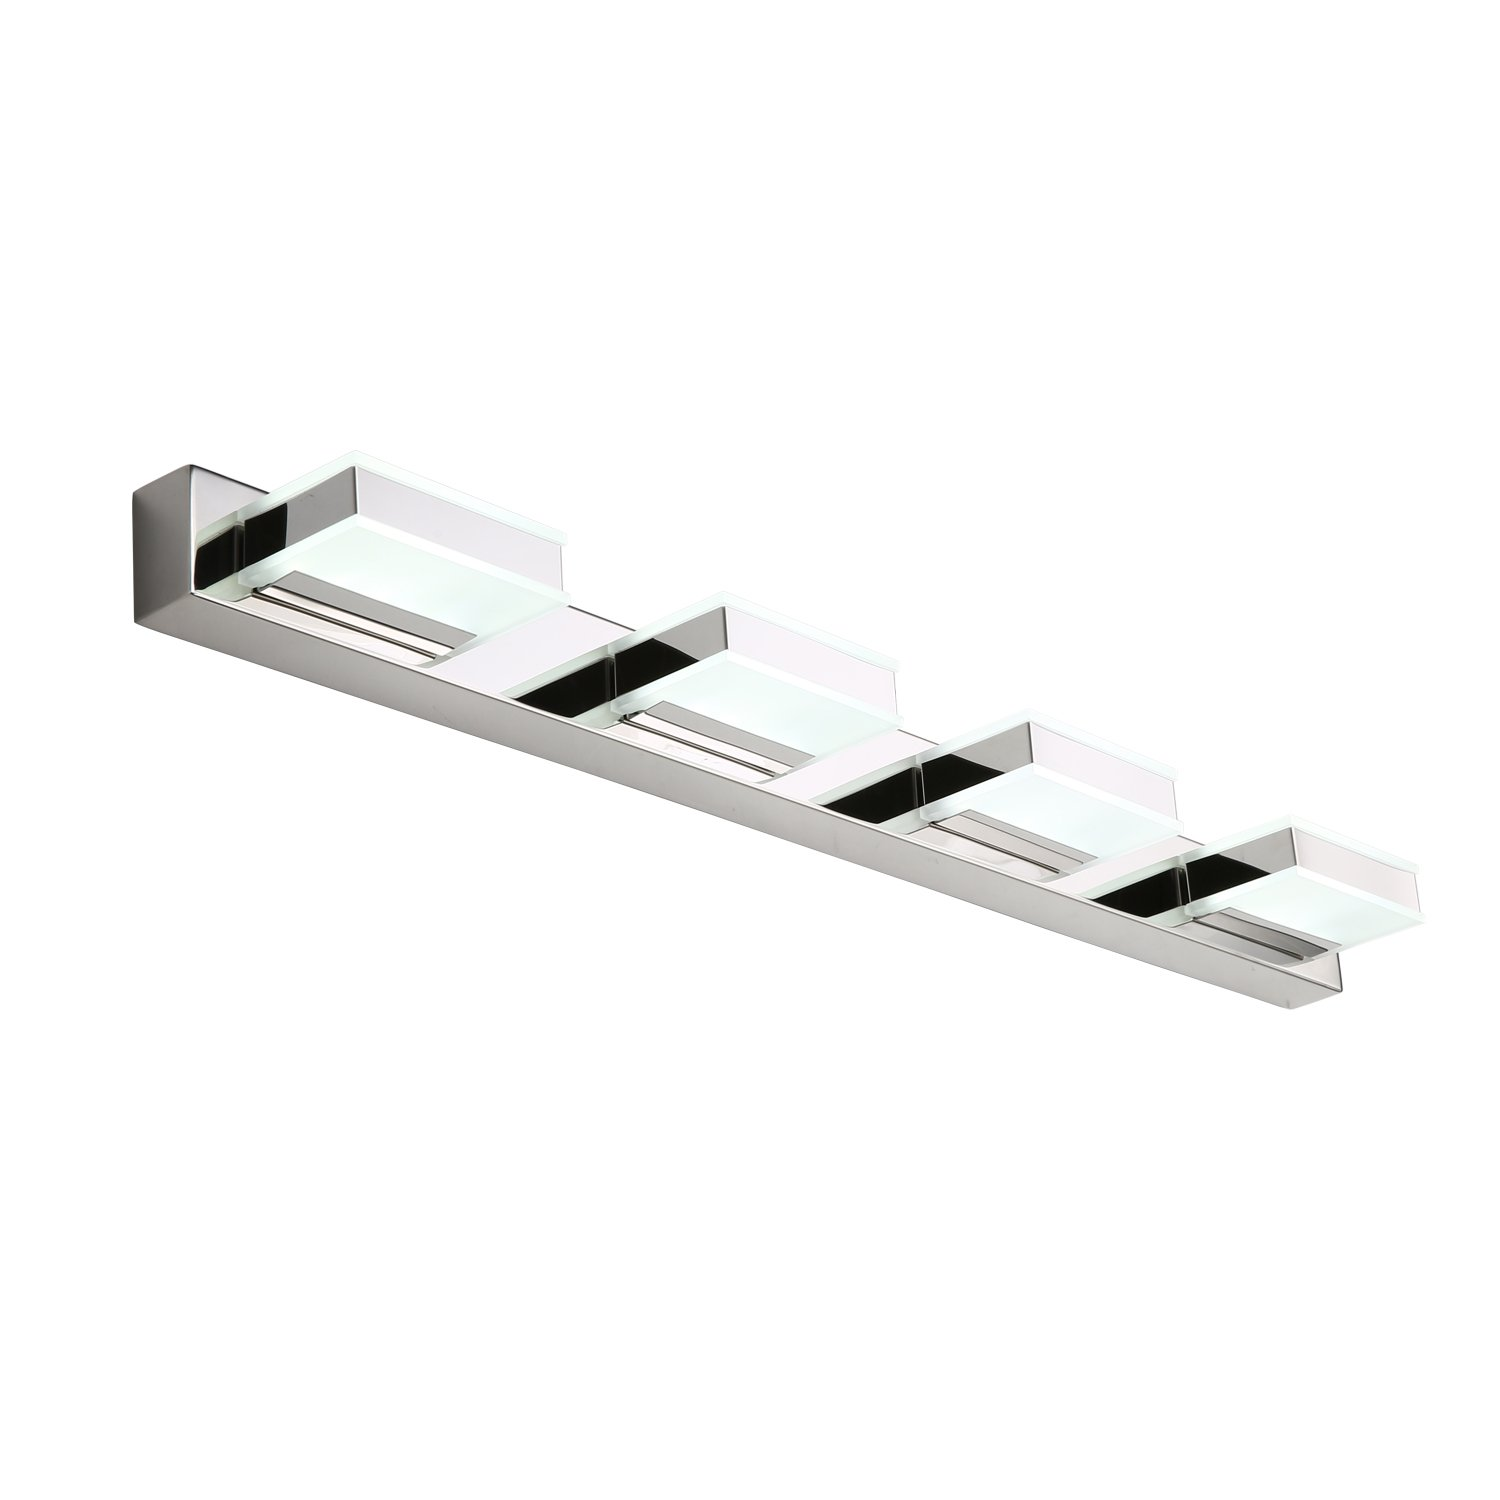 mirrea 16W Modern LED Vanity Light in 4 Lights, Cold White by mirrea (Image #1)